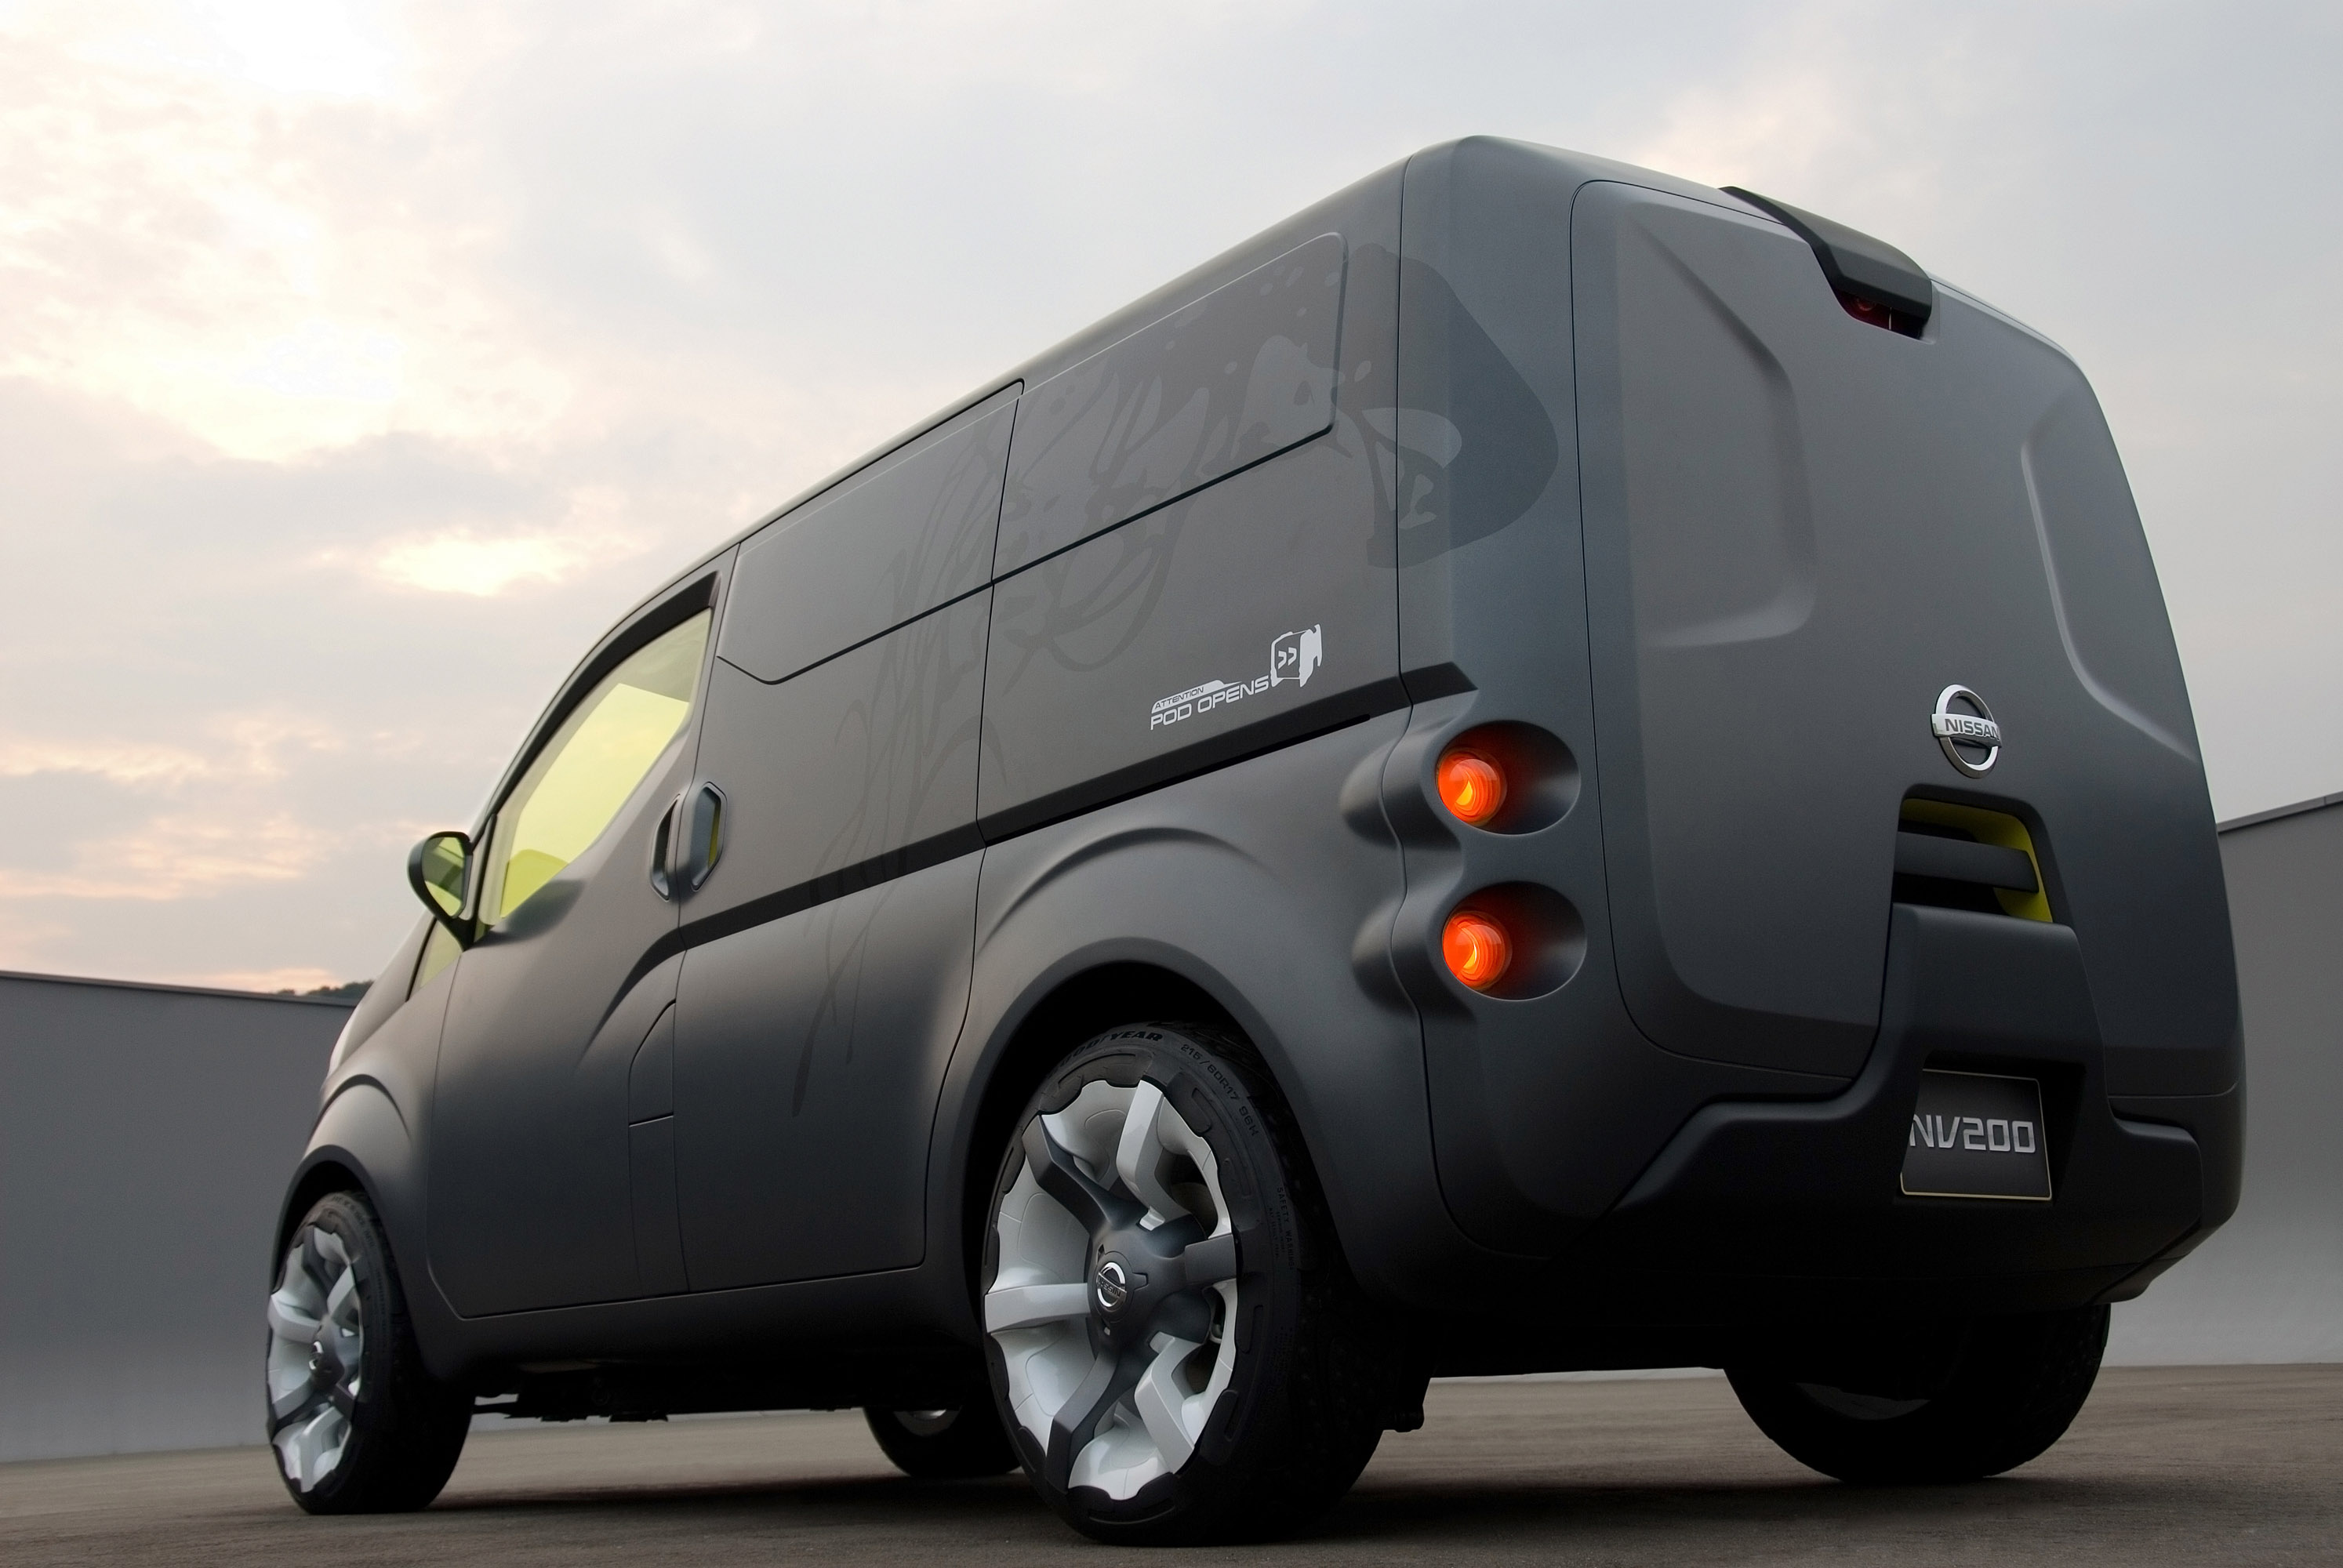 nissan nv200 concept brings human touch and. Black Bedroom Furniture Sets. Home Design Ideas